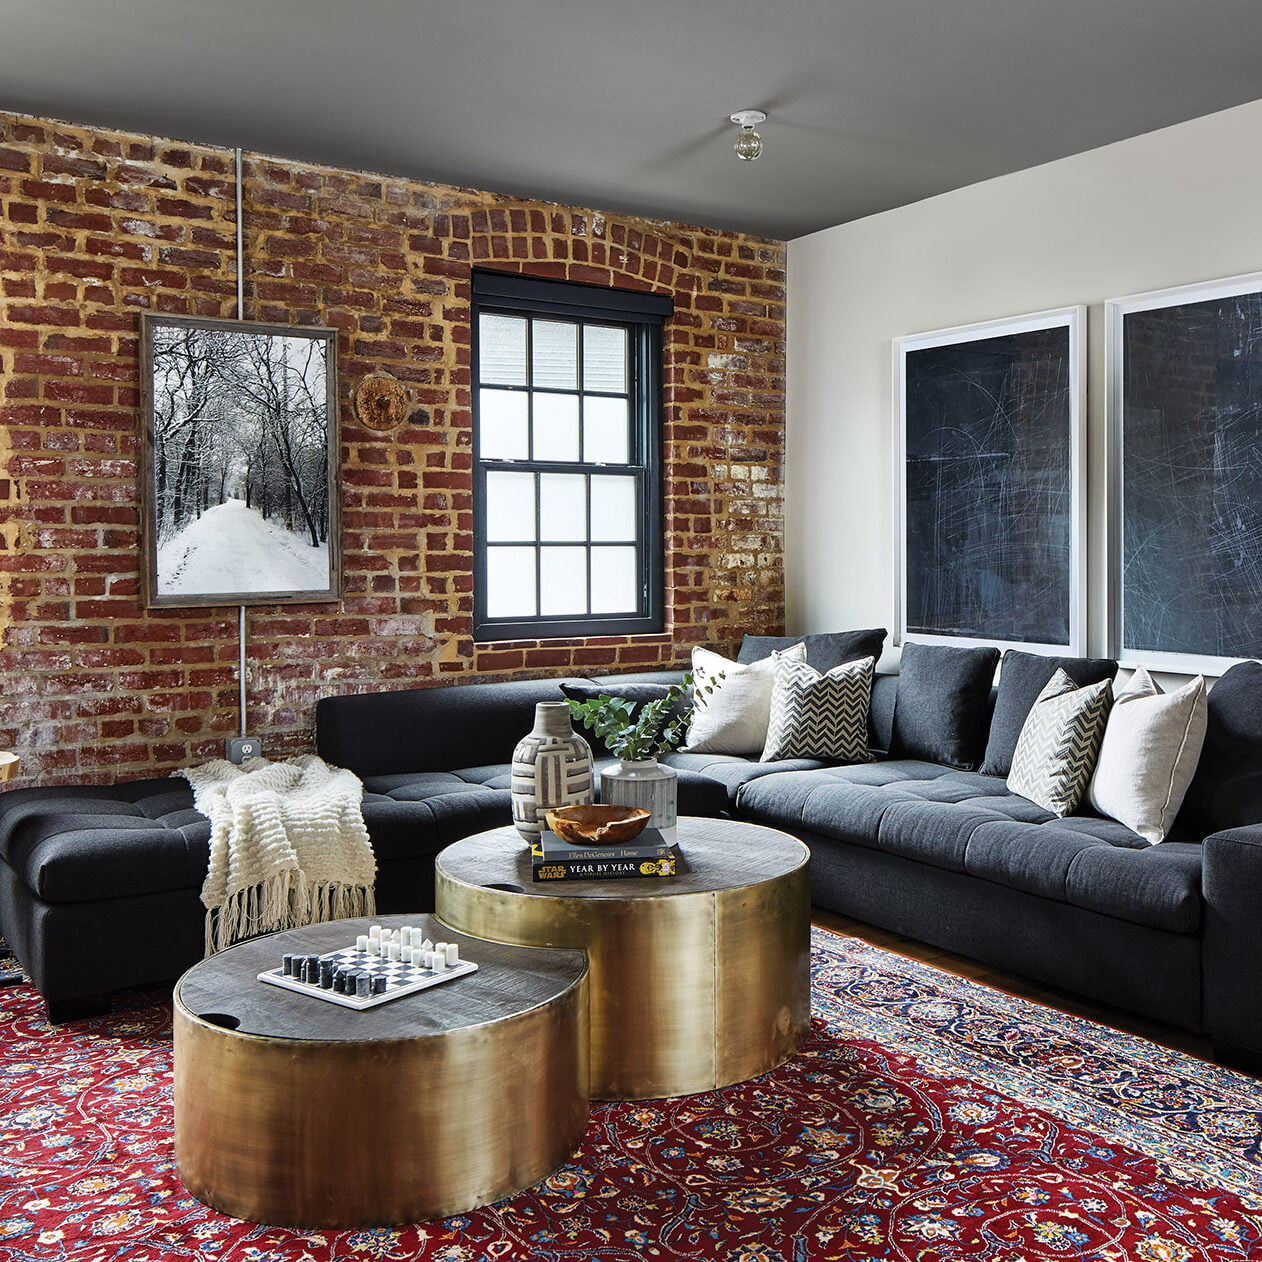 Industrial-chic condo located in a revamped 1902 factory in DC.